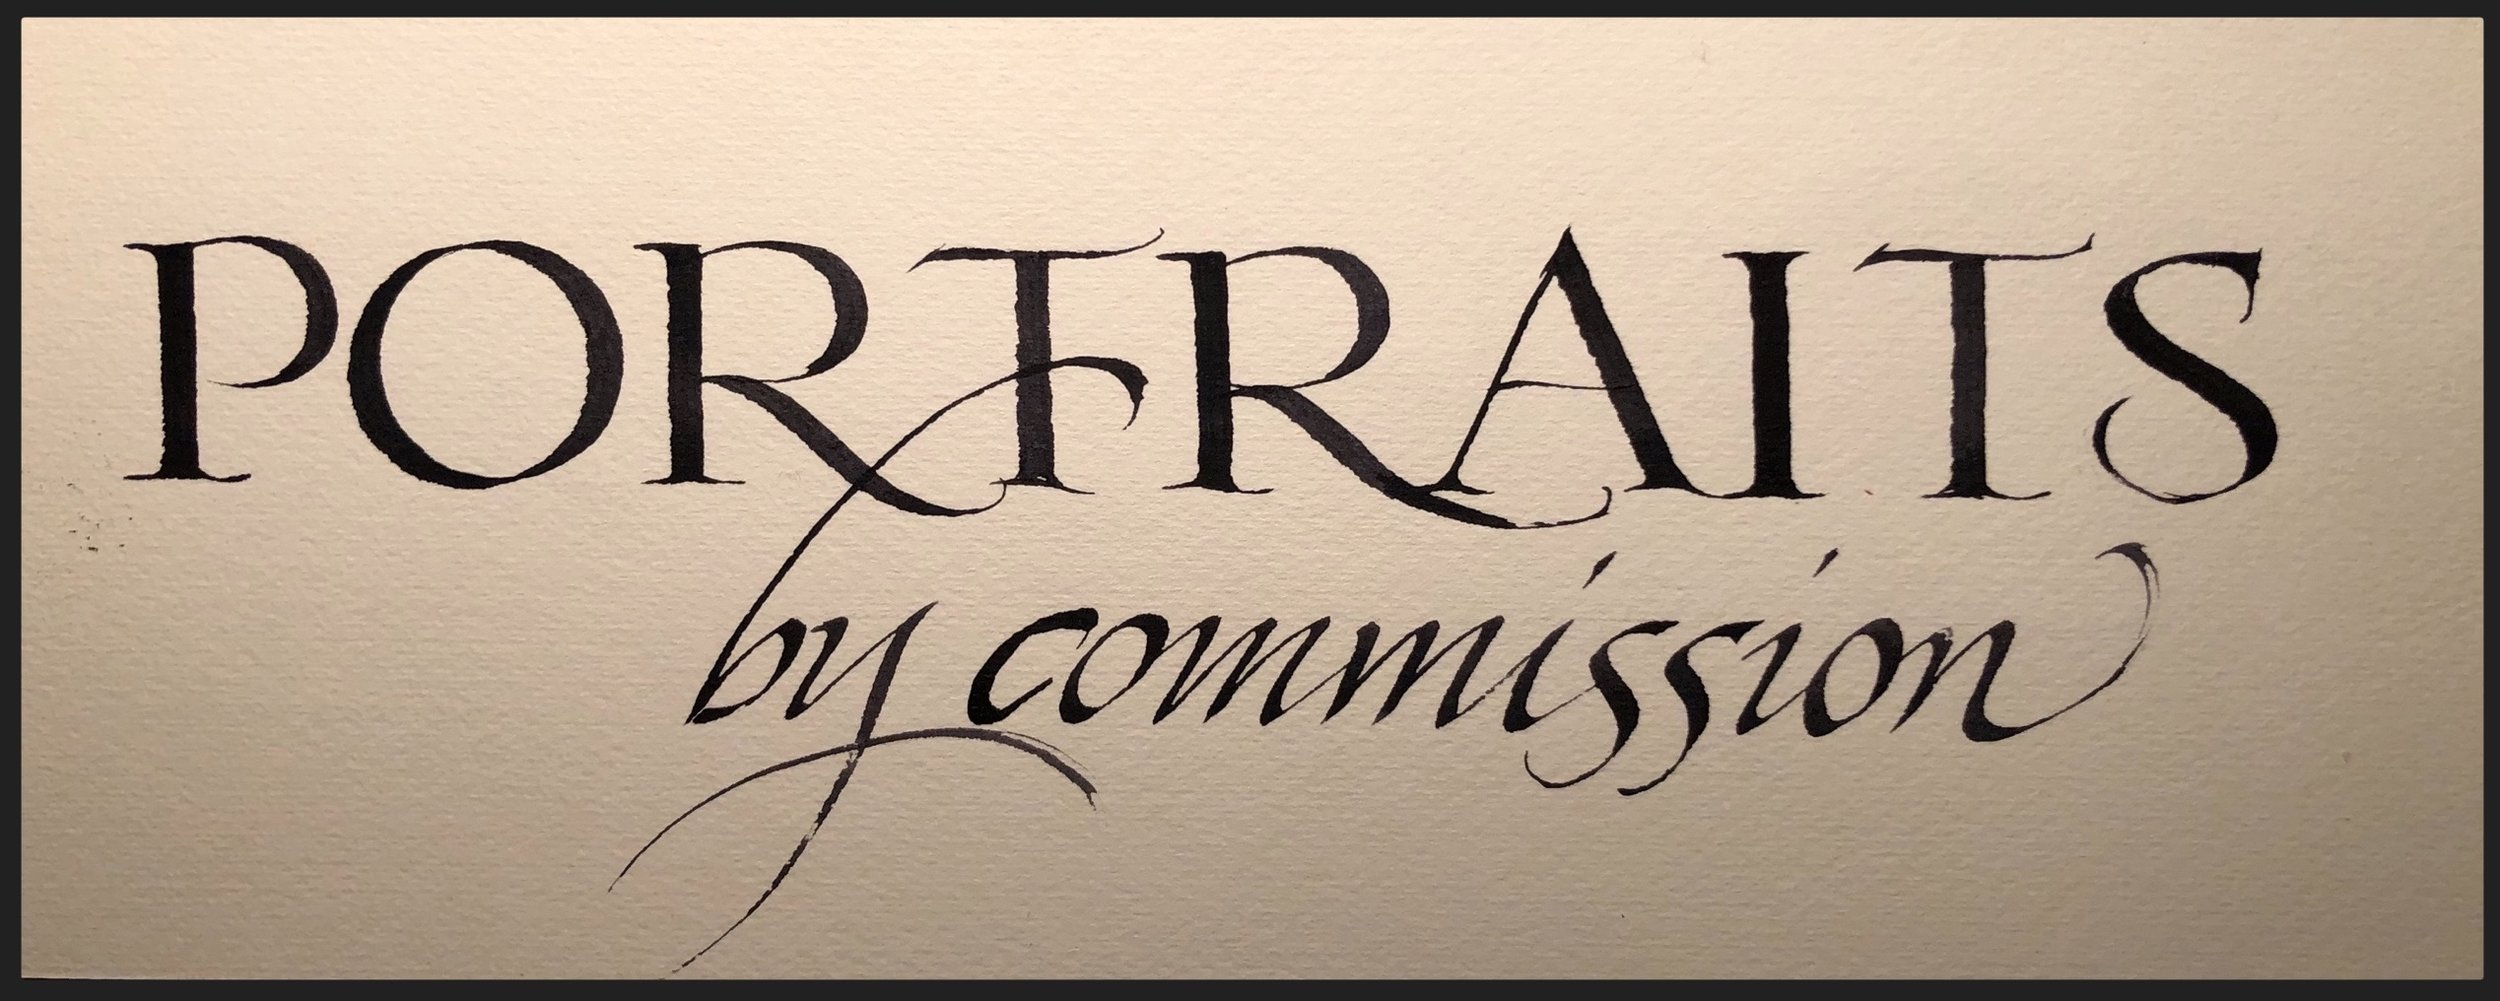 …. and sometimes a little calligraphy!